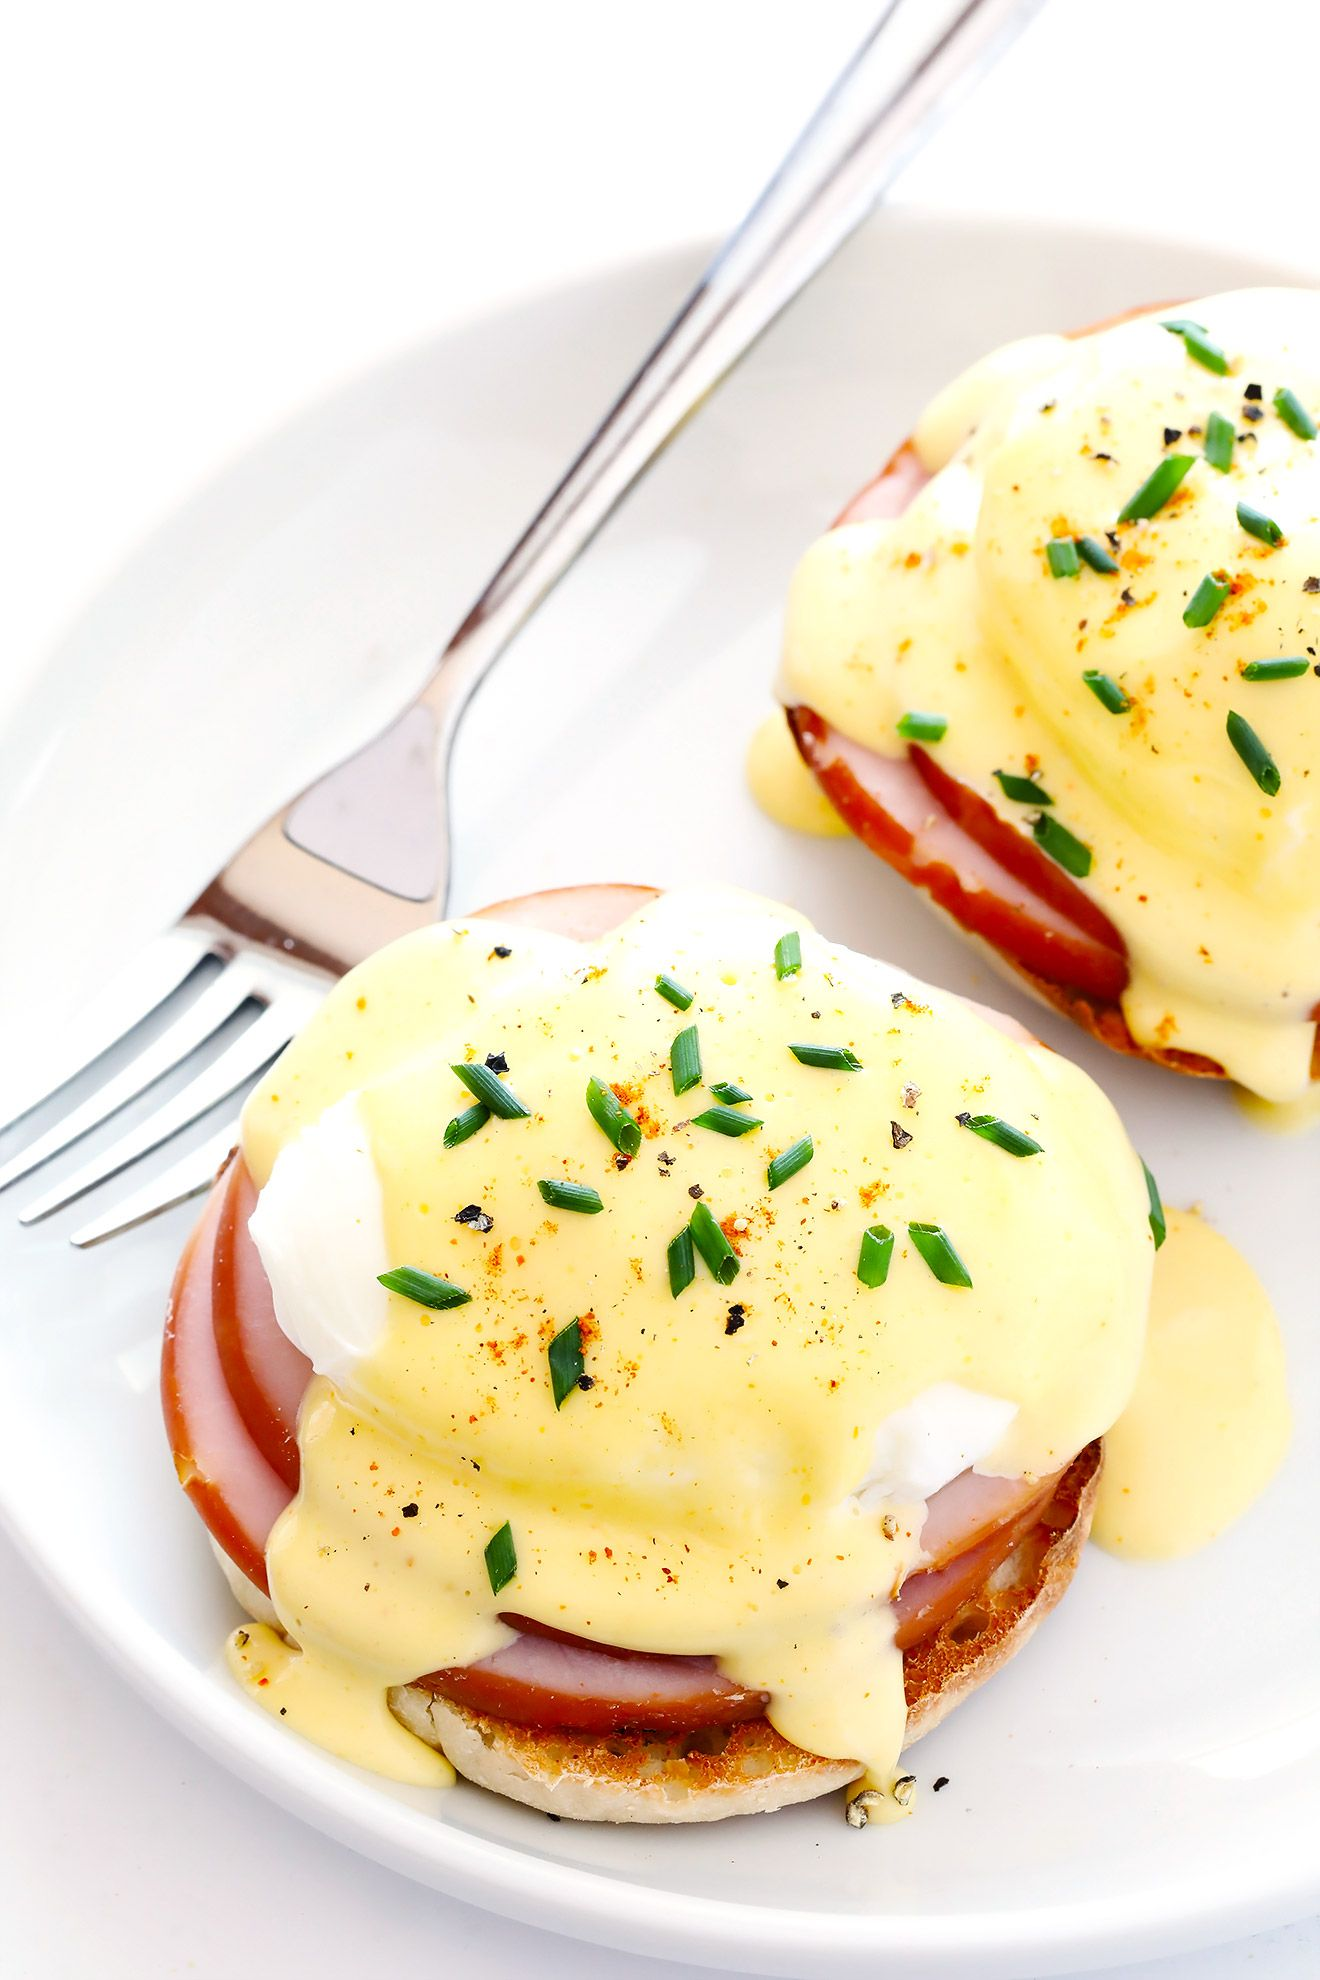 best dating after weight loss shakes hollandaise